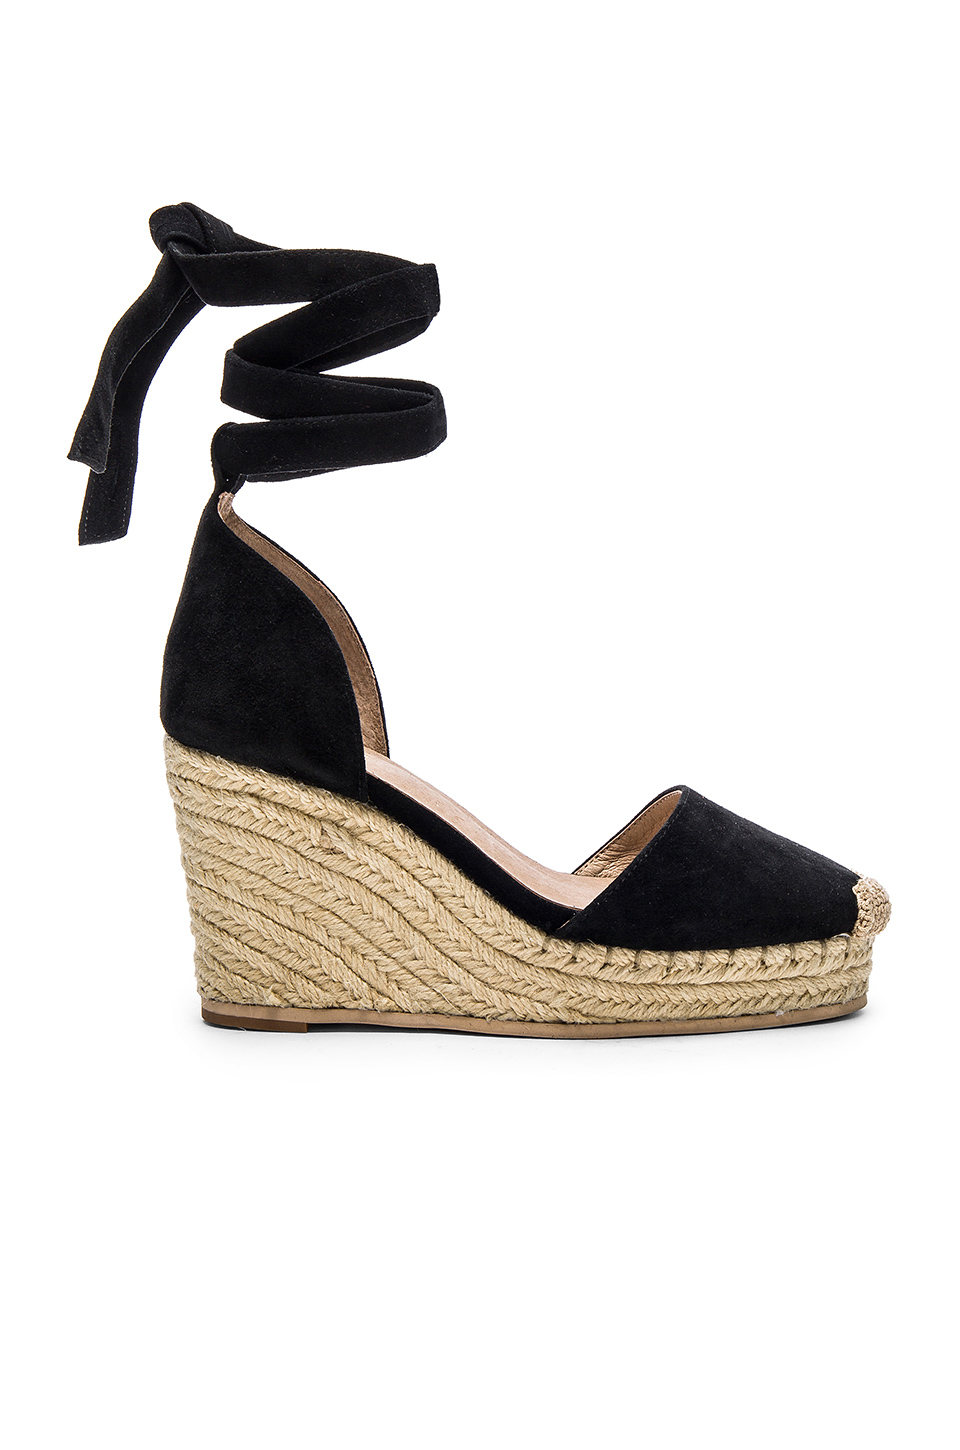 We are a espadrille store, we 've been producing espadrille Dress for about 5 years. Black. Casual Hoodies. Street Punk. Modern Classic. Mixed Prints. Colorblock. TOP RATED. NEW IN. HOT SALE. Plus Size. Scallop Open Toe Flatform Espadrille Wedge Scallop Open Toe Flatform Espadrille Wedge + Add to Bag Metallic Slingback Espadrilles.